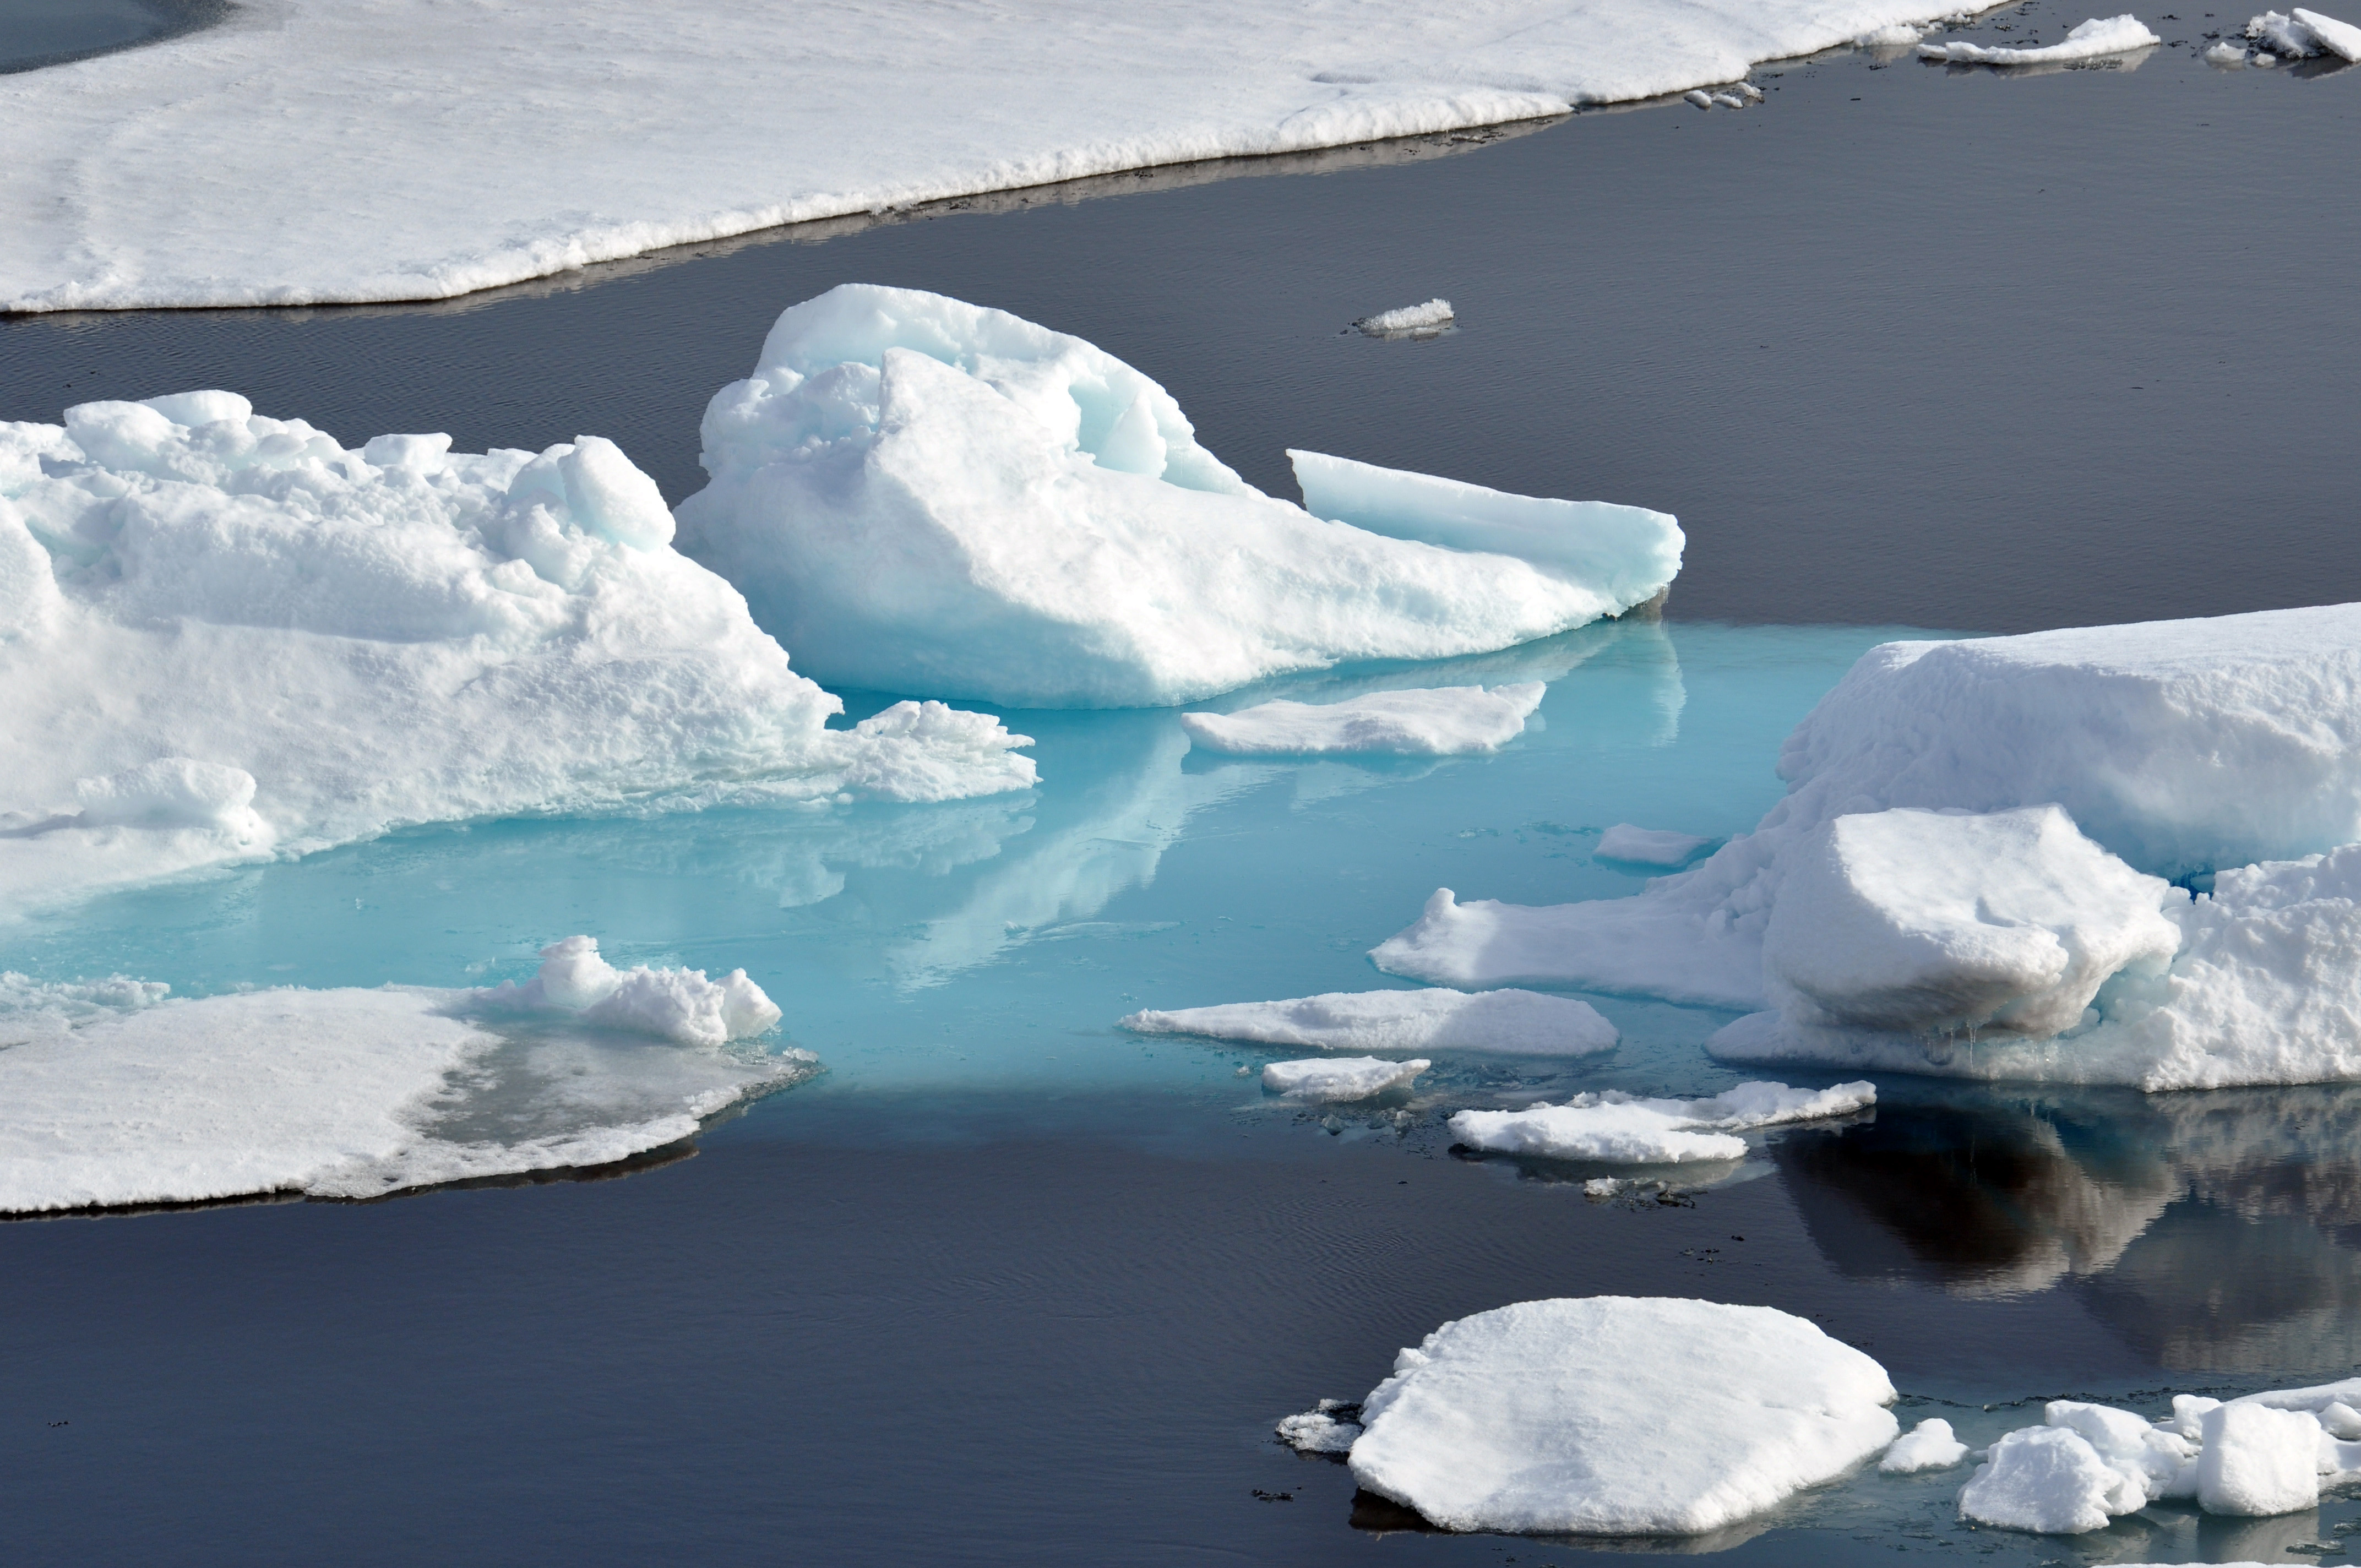 Dialogue and Commission on Arctic Climate Change